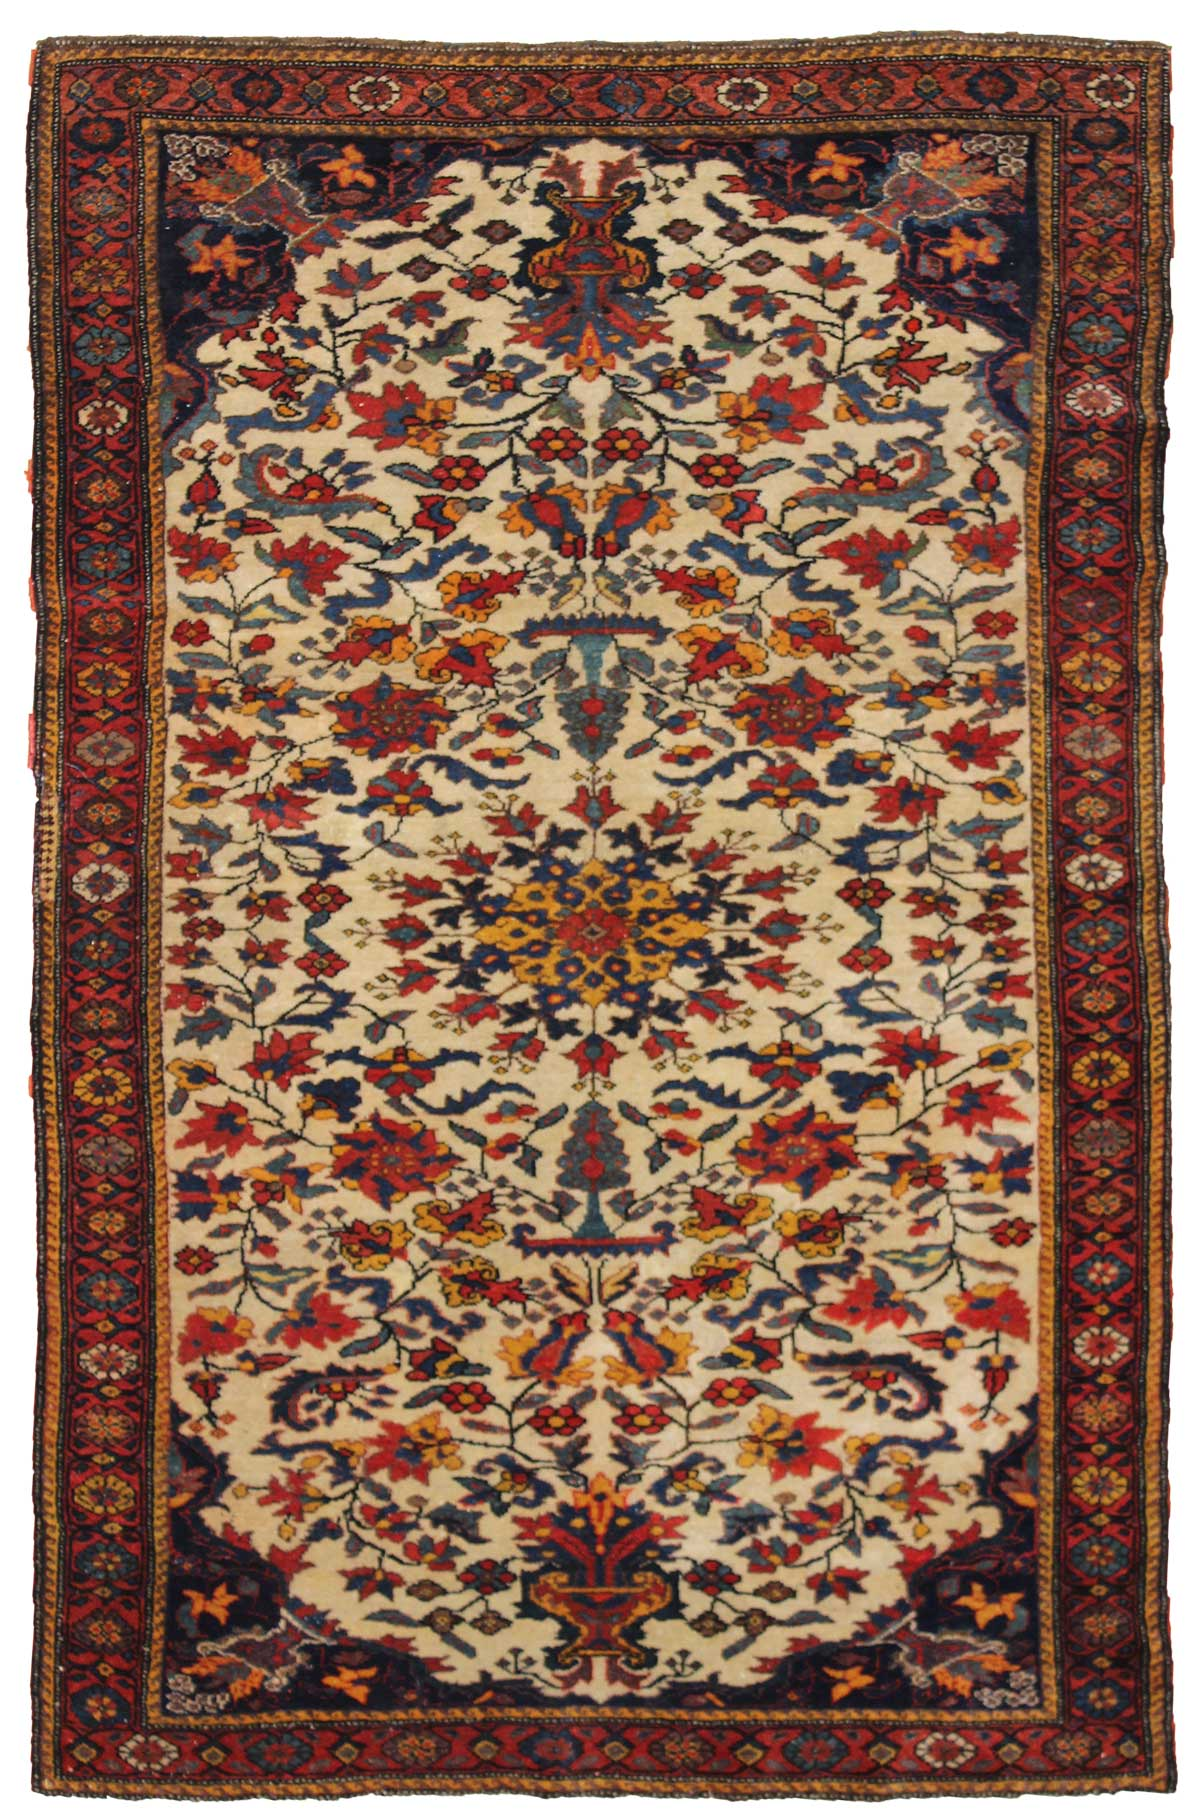 Antique Bakhtiari Handwoven Traditional Rug